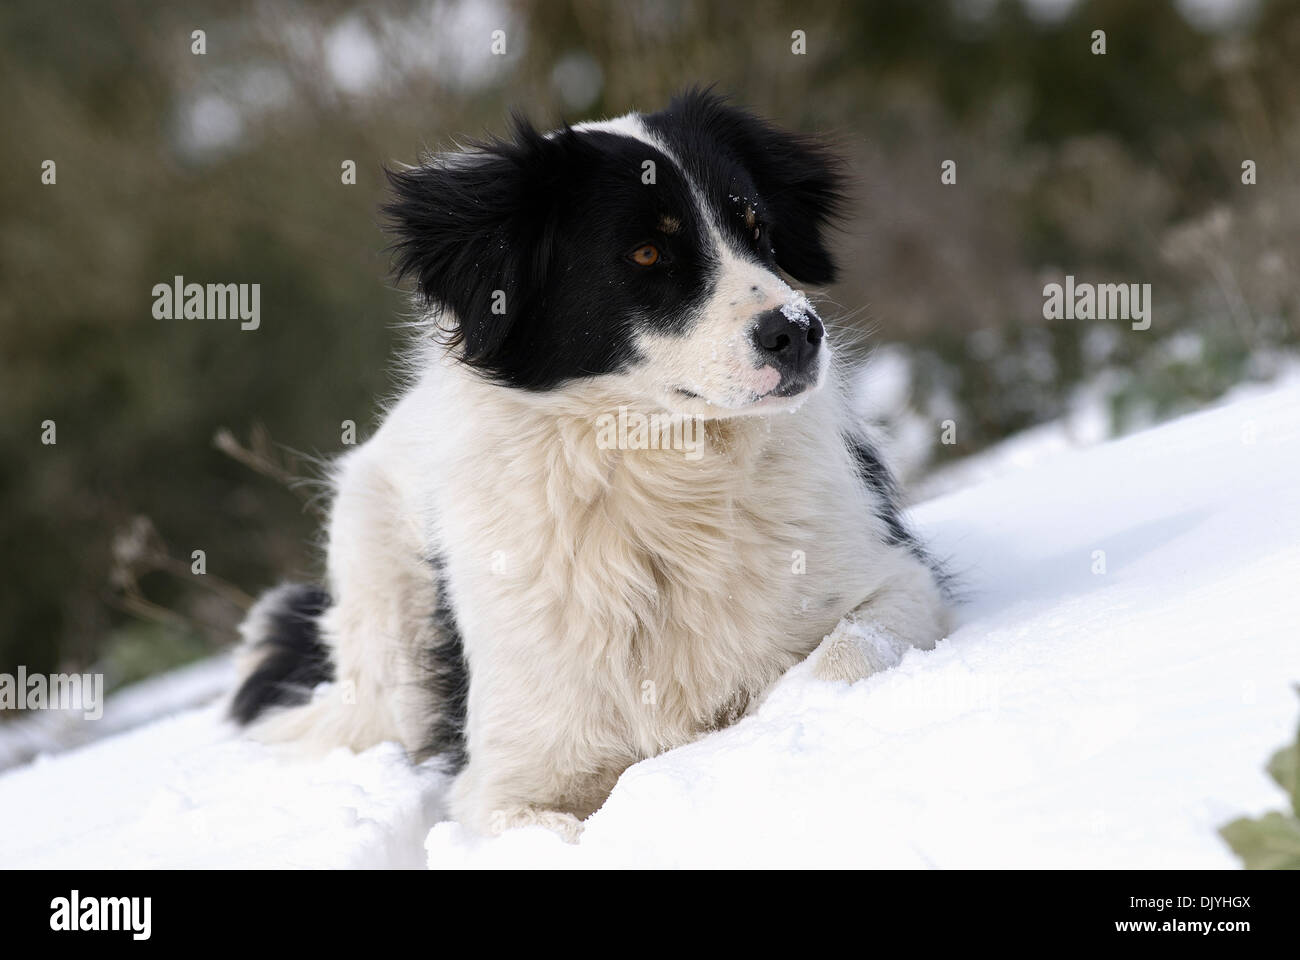 Young Border Collie lying in snow - Stock Image